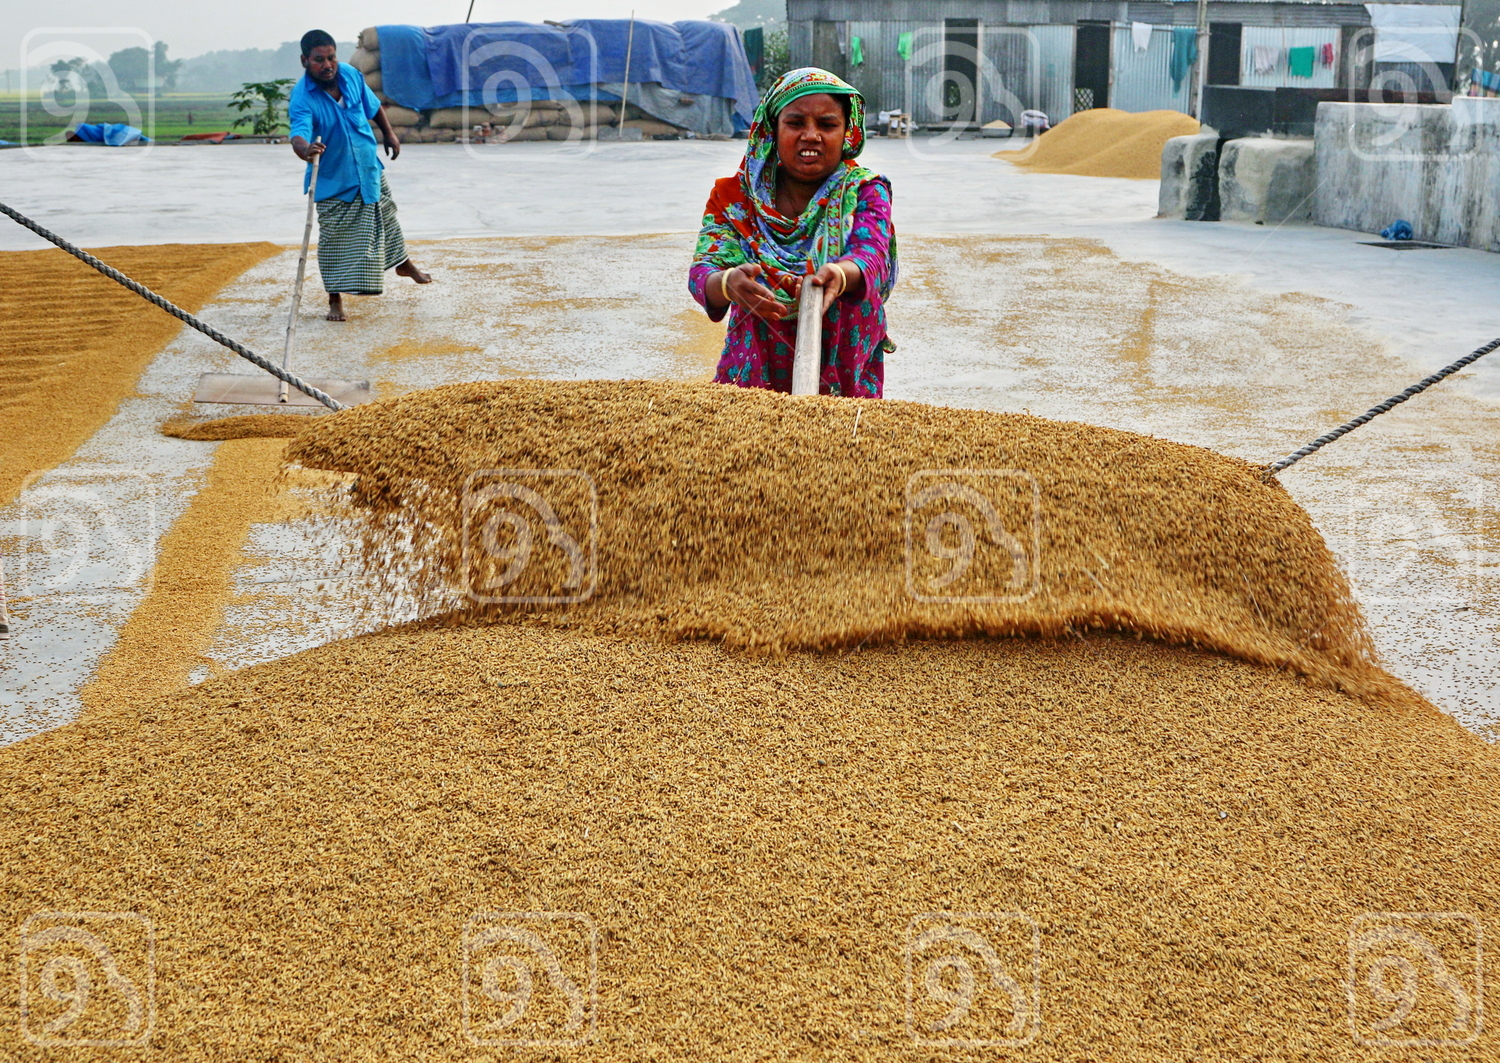 Rice processing in Dhaka